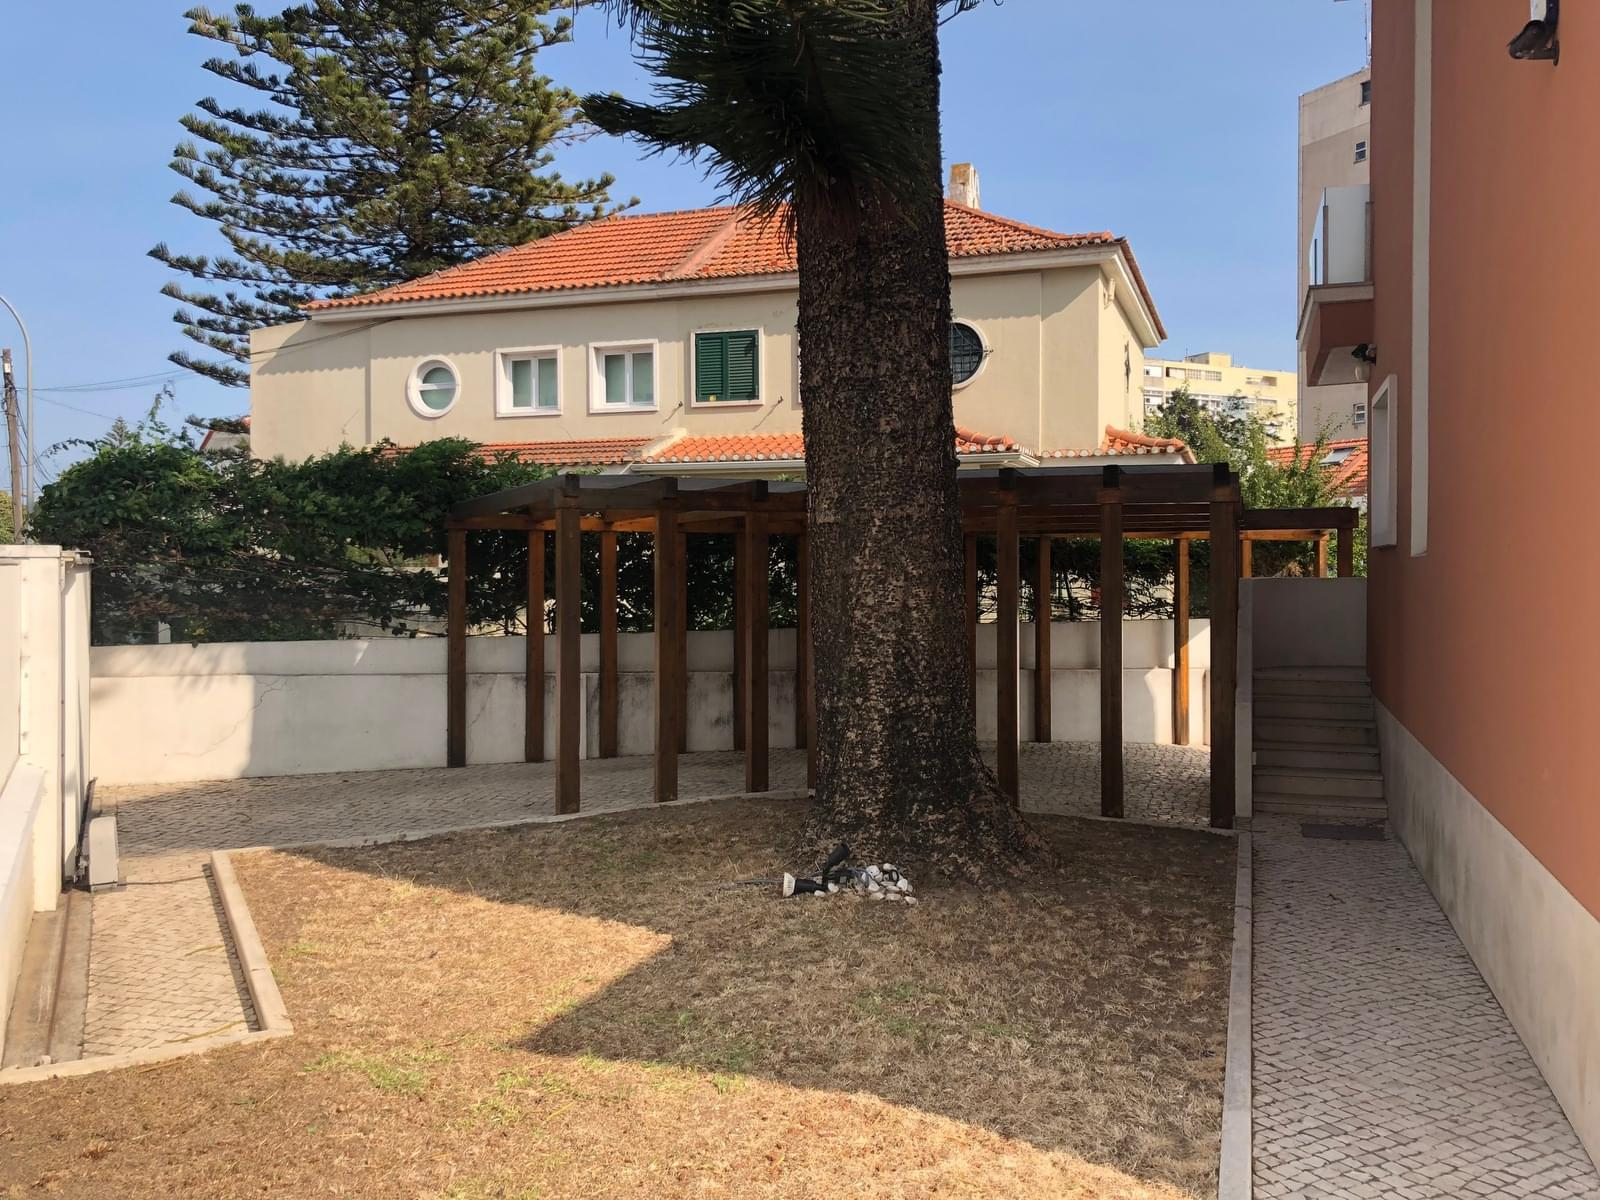 4 bedroom villa with parking